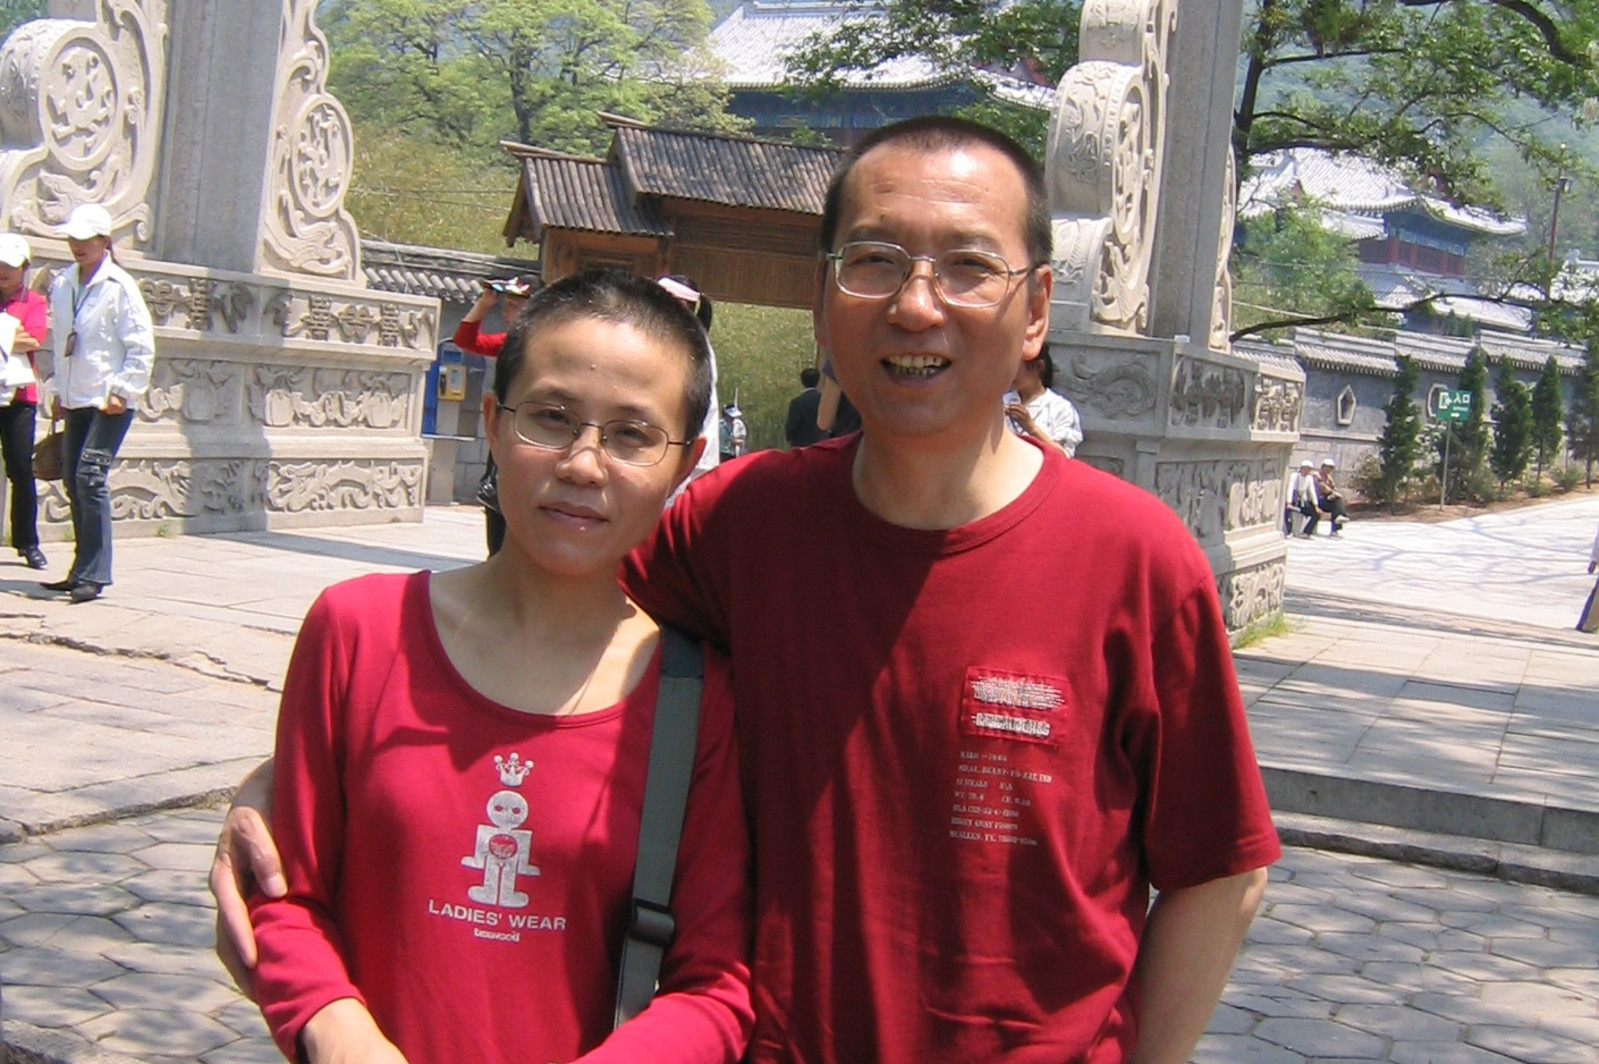 China: Release poet Liu Xia under illegal house arrest